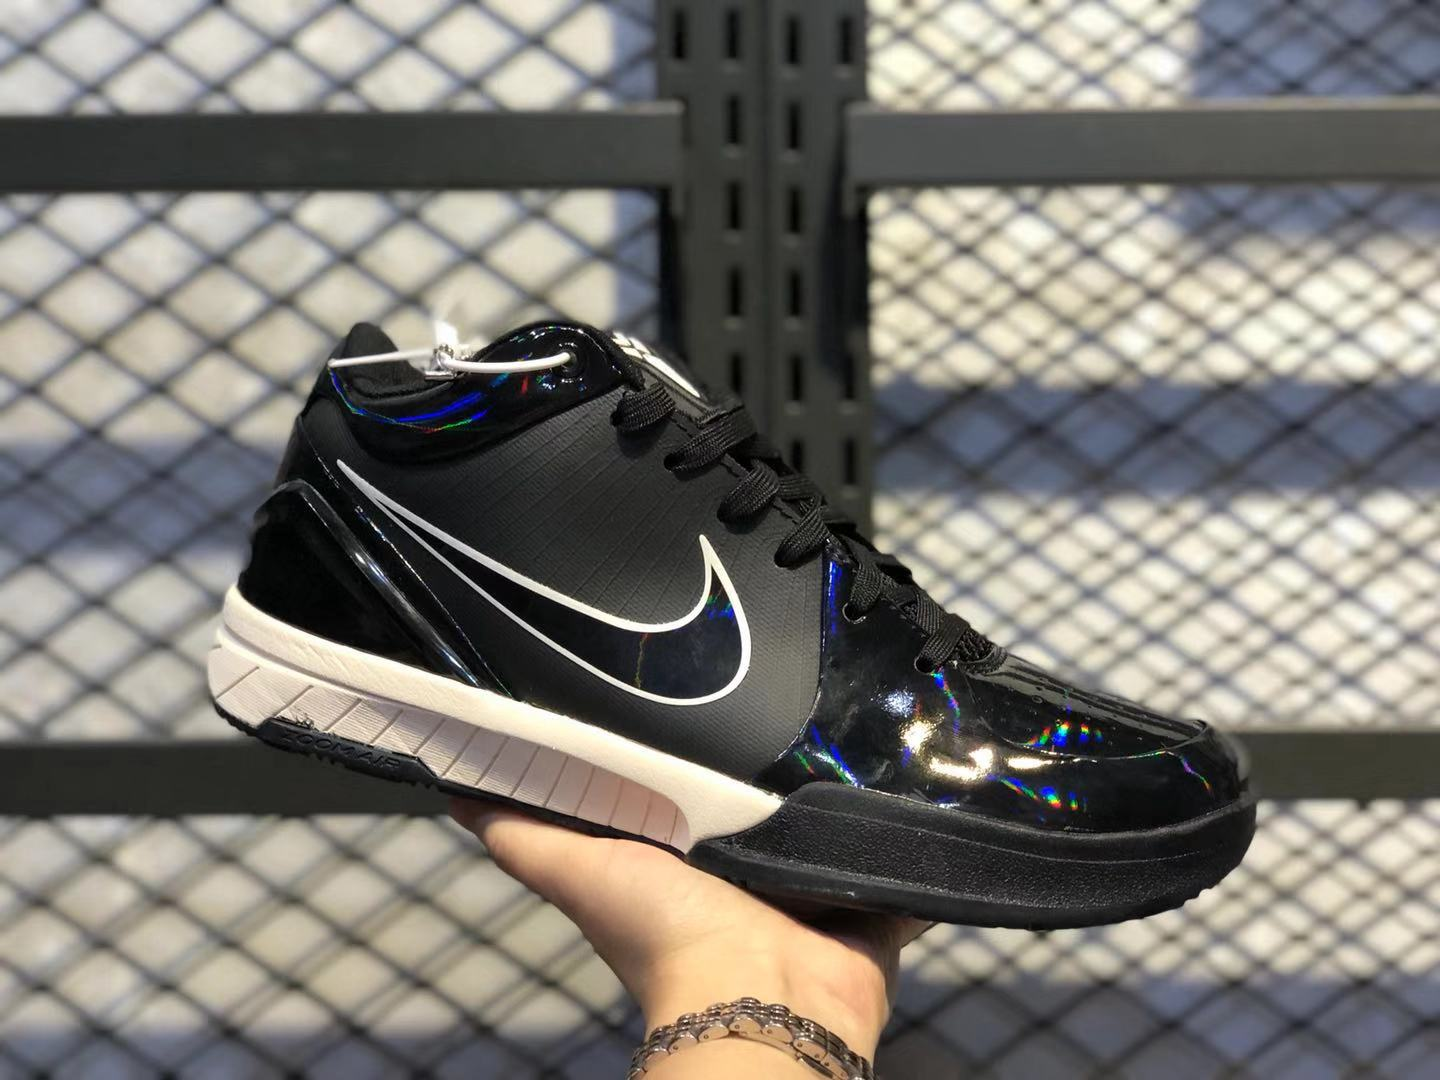 Undefeated x Nike Zoom Kobe 4 Protro Black/Multi-Color For Online Sale